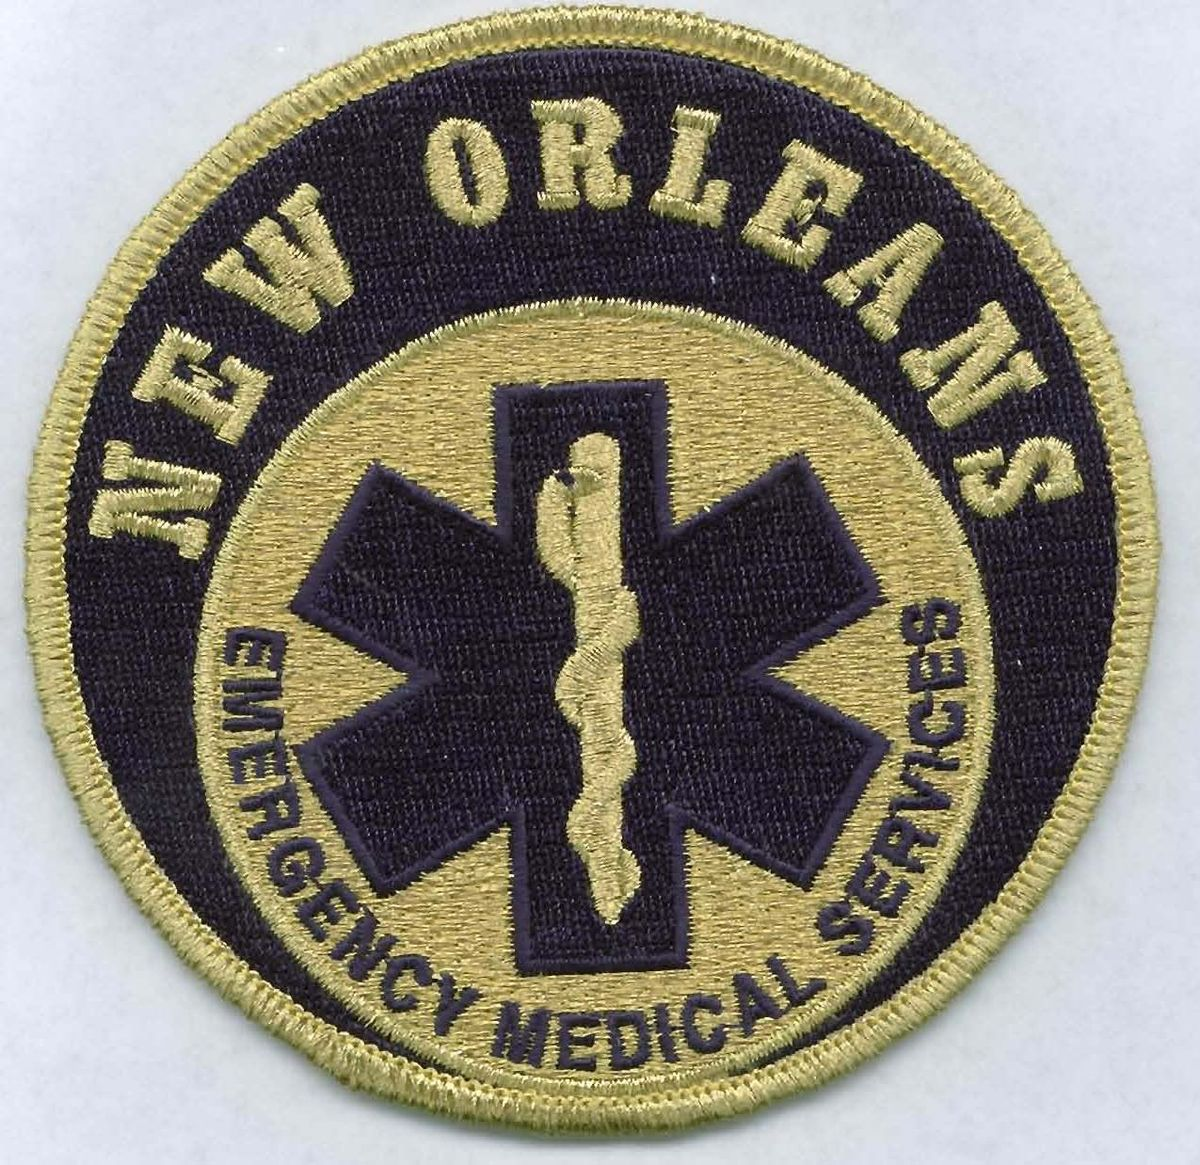 New Orleans Emergency Medical Services - Wikipedia